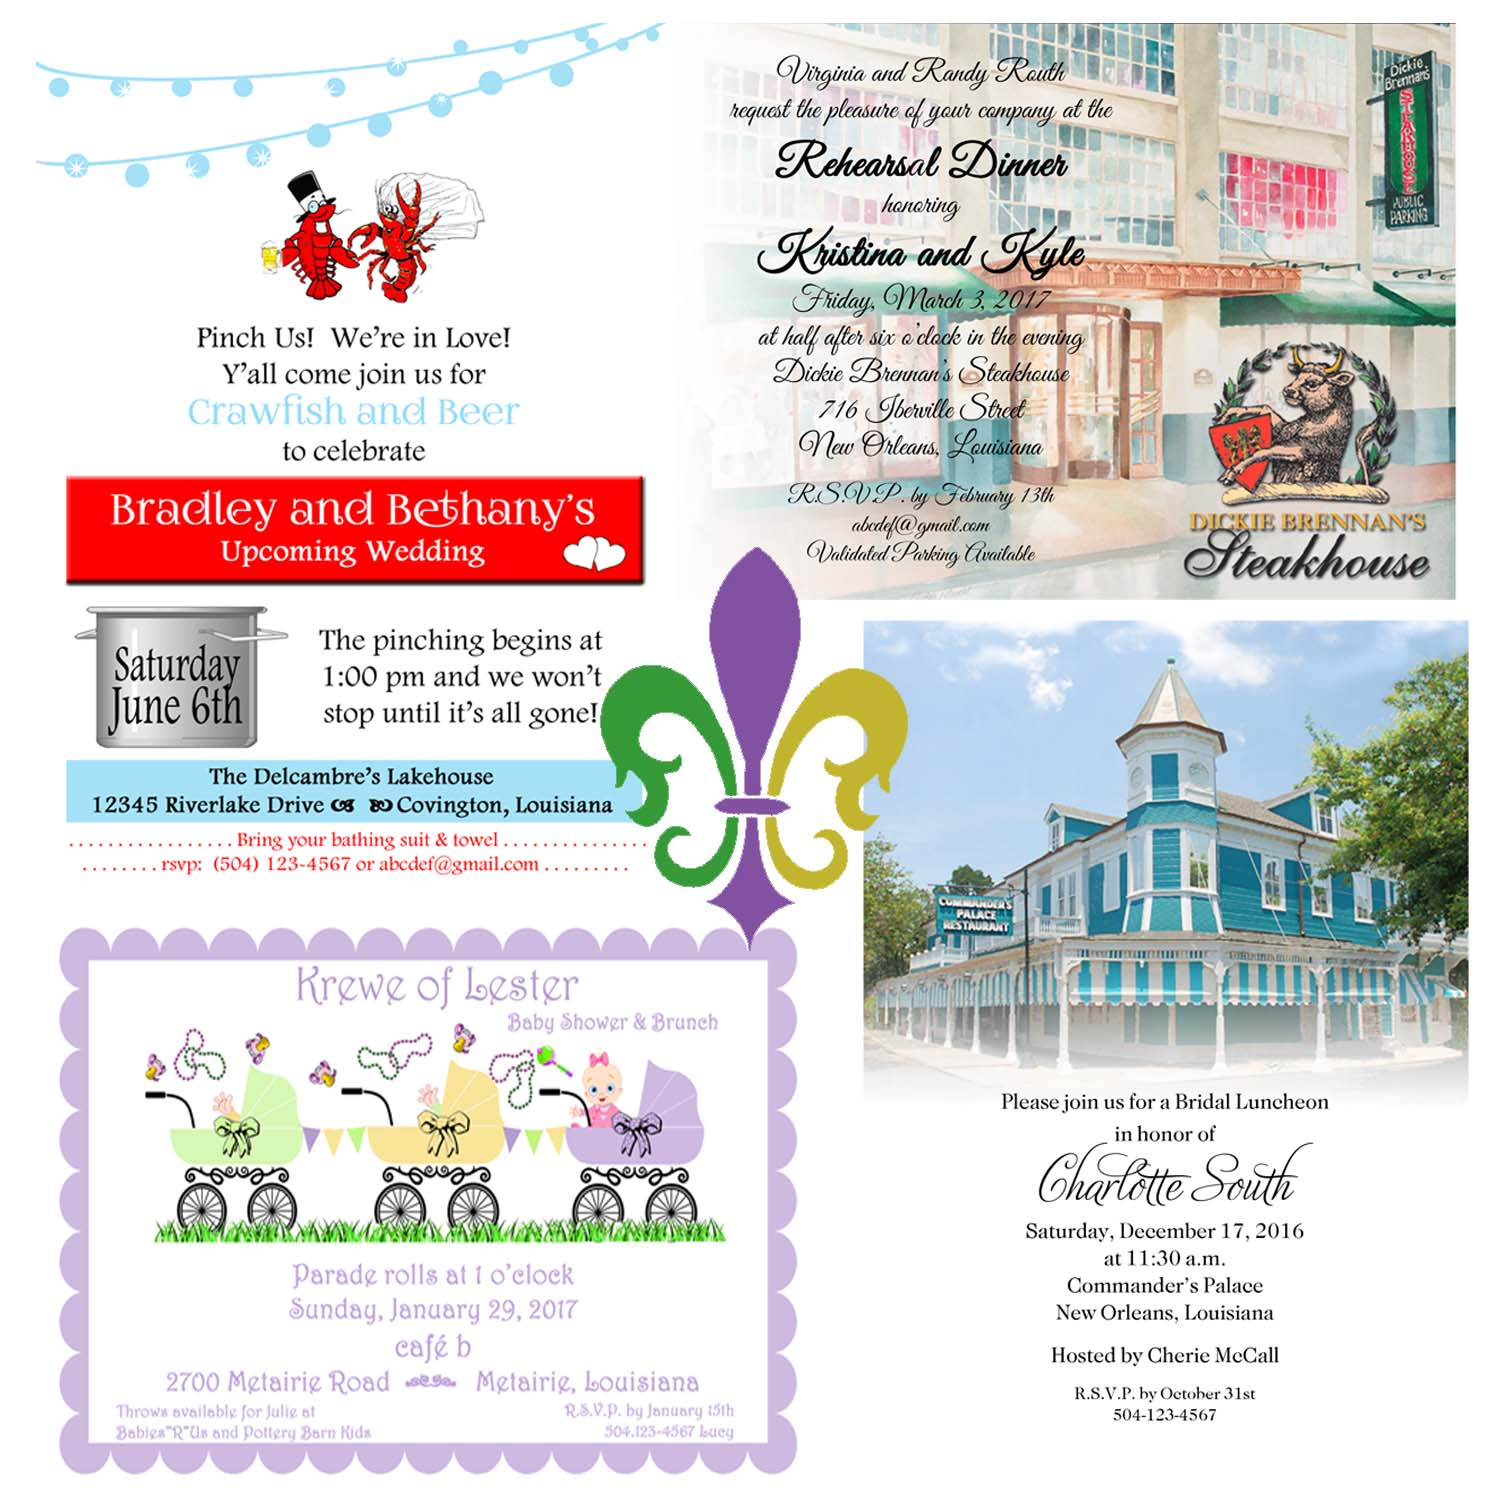 Engagement Party, Bridal Shower, And Bridal Luncheon Invitations By Rudman's Gifts